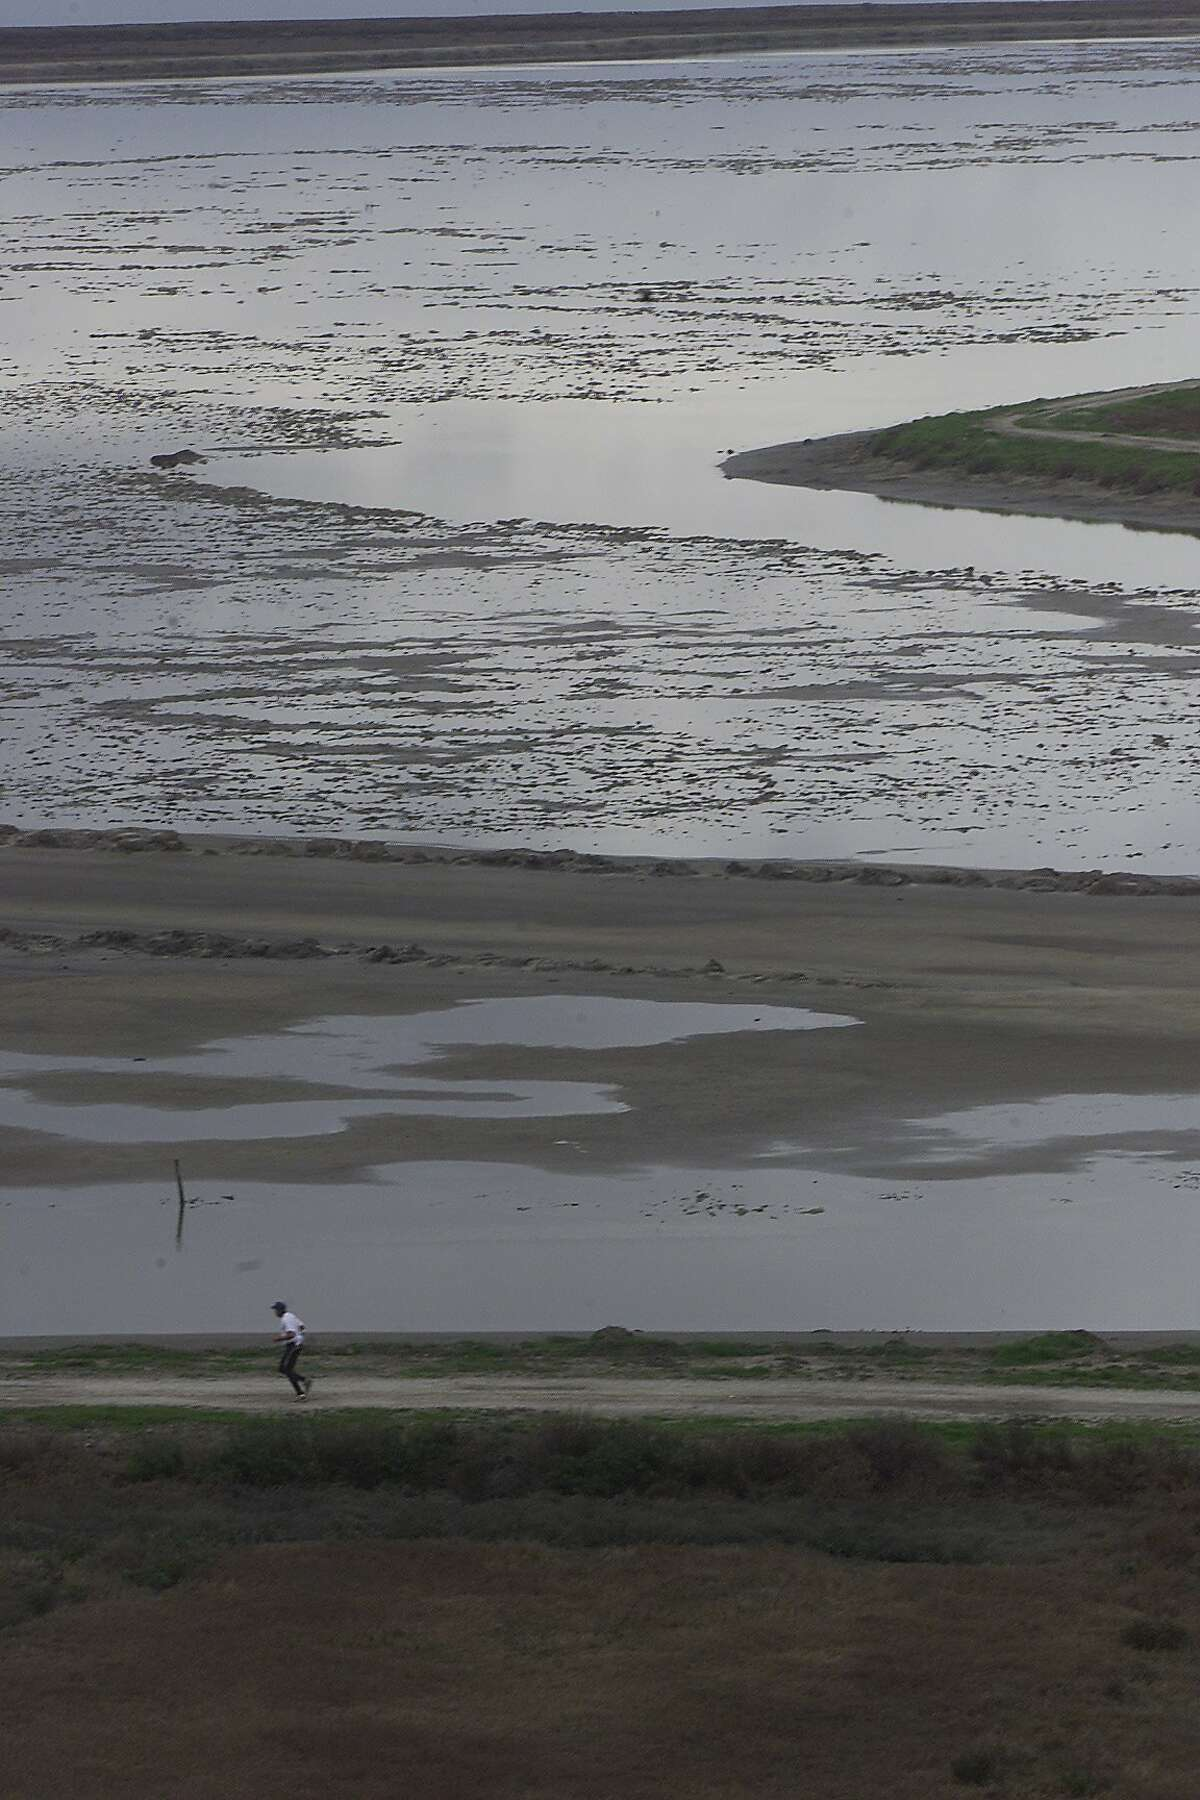 NORTON5-C-21JAN02-MT-LS -----A jogger runs along a path in the Don Edwards San Francisco Bay Wildlife Refuge. Interior Secretary Gale Norton tours the Don Edwards San Francisco Bay Wildlife Refuge at Number 1, Marshlands Road in Fremont and is expected to announce funding increase for the national wildlife refuge system. Photo by Lea Suzuki/SAN FRANCISCO CHRONICLE